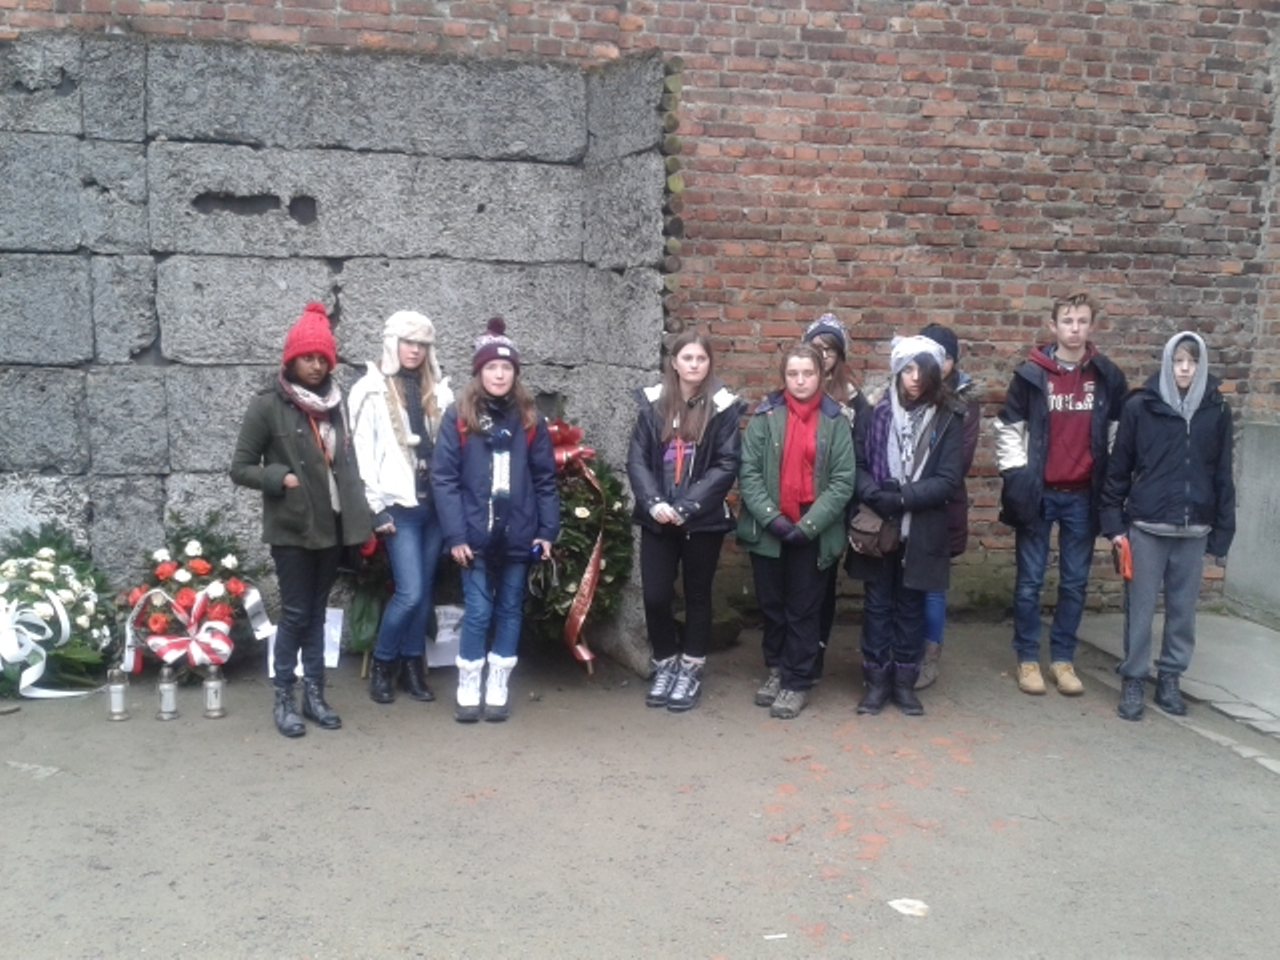 Young people from Thurrock line up next to the Firing Wall memorial in Auschwitz